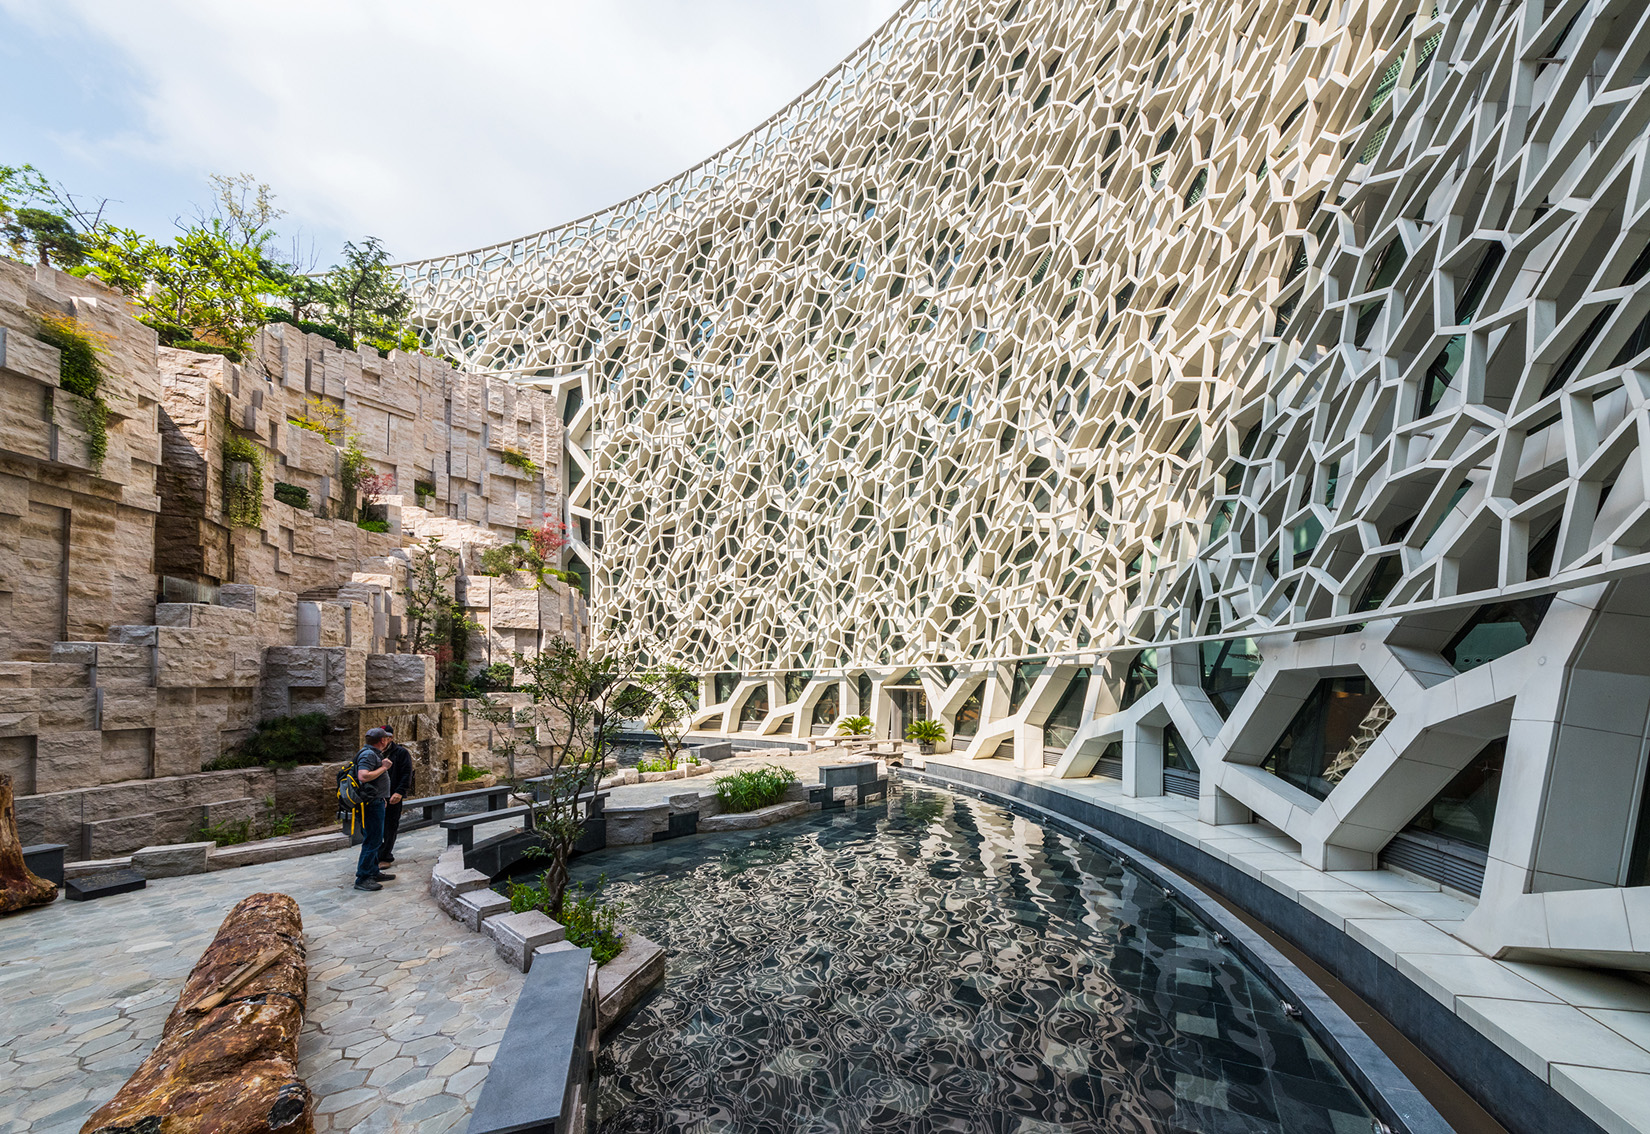 shanghai museum natural history architecture china architects organic nature perkins building wall materials institute patterns projects spaces dea aiachicago